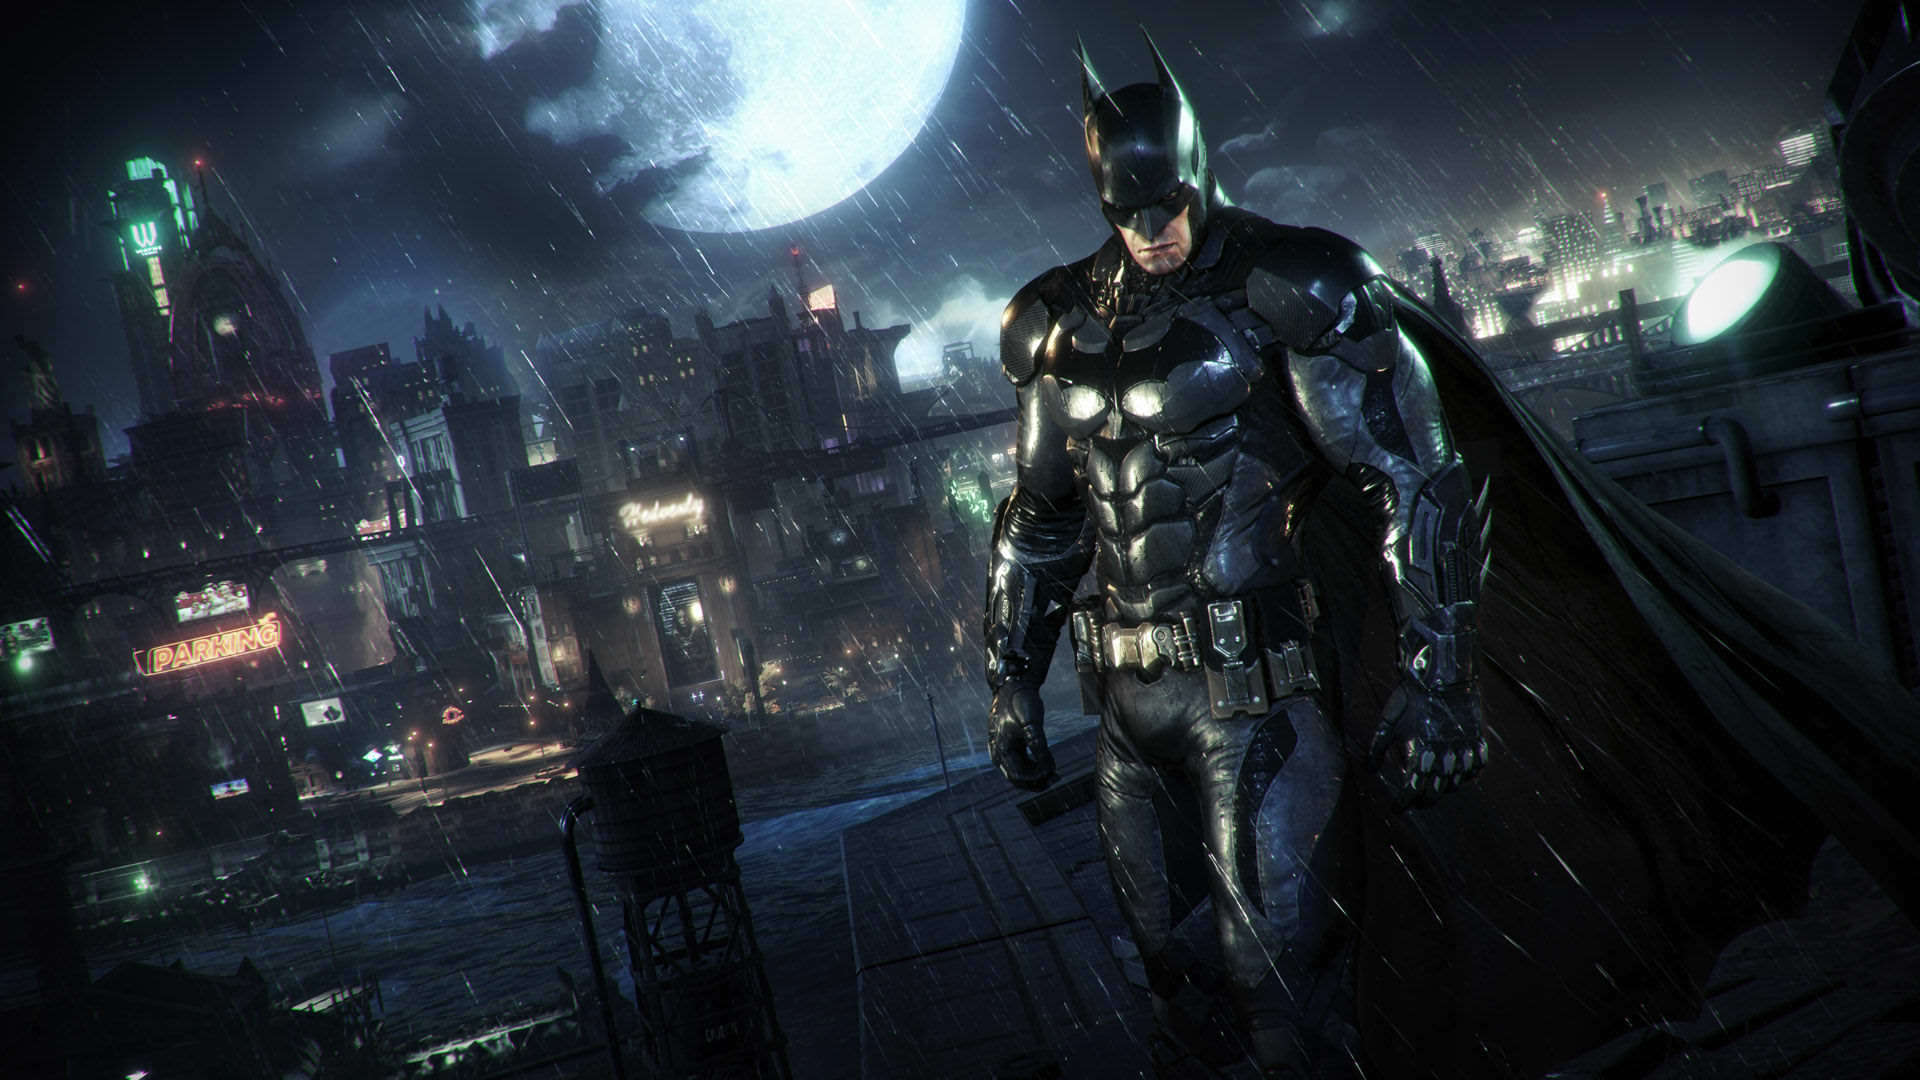 Wallpaper Batman Arkham Knight 04 HD Wallpaper Upload at September 1920x1080